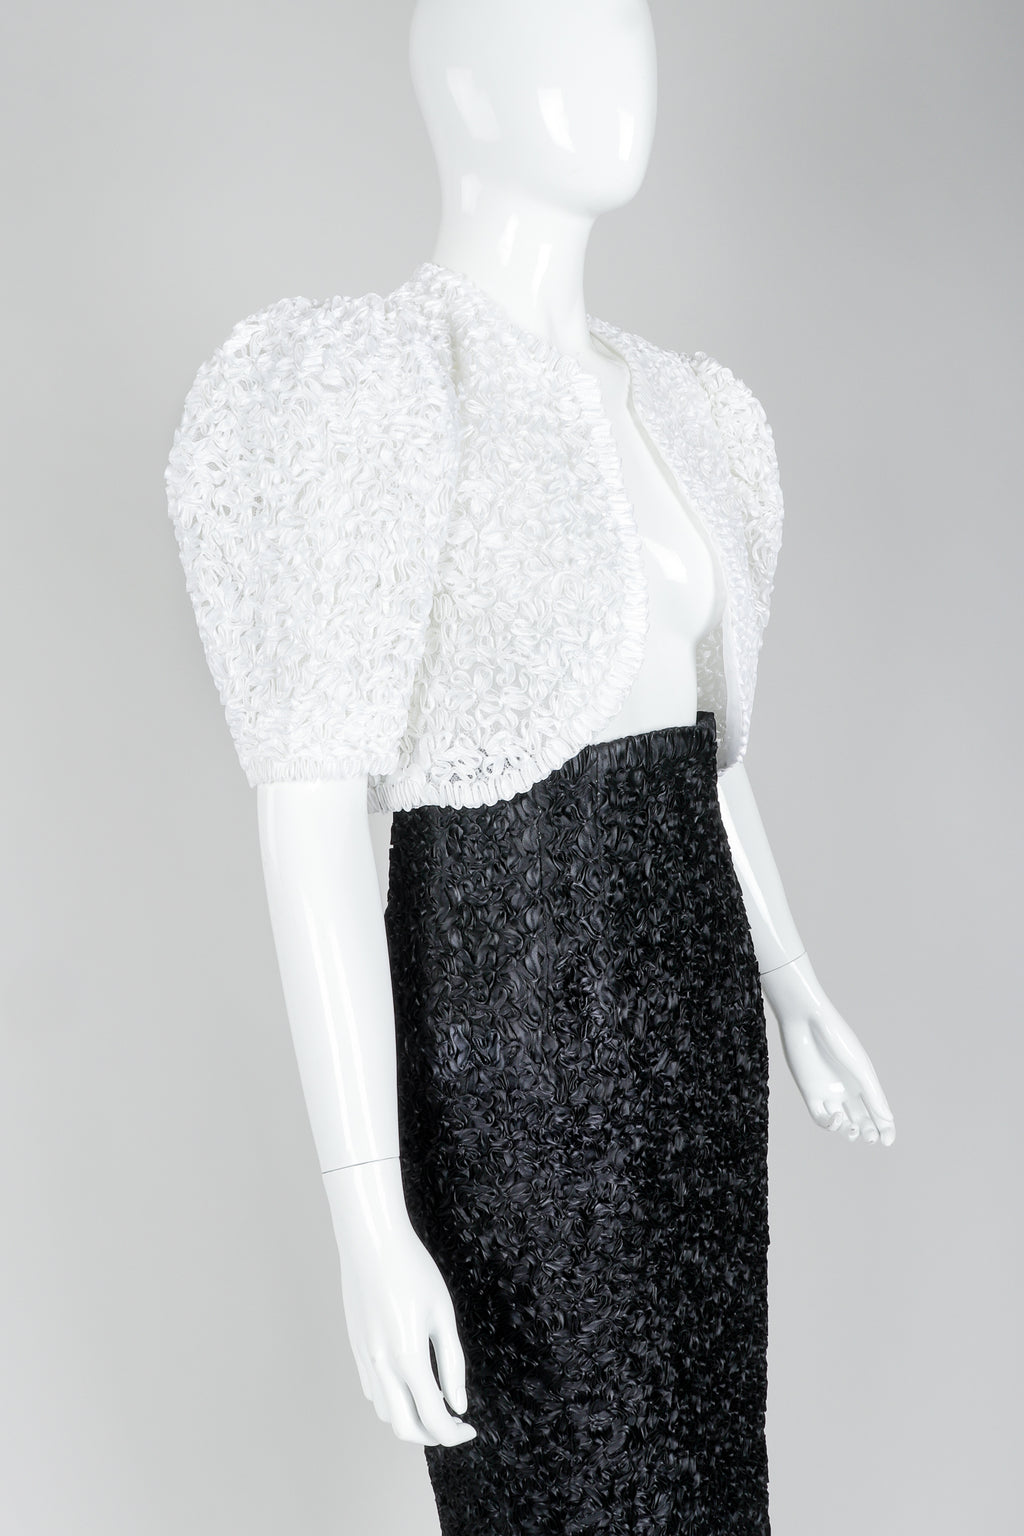 Victor Costa White Ribbon Lace Jacket and Black Skirt, Closeup on Mannequin at Recess